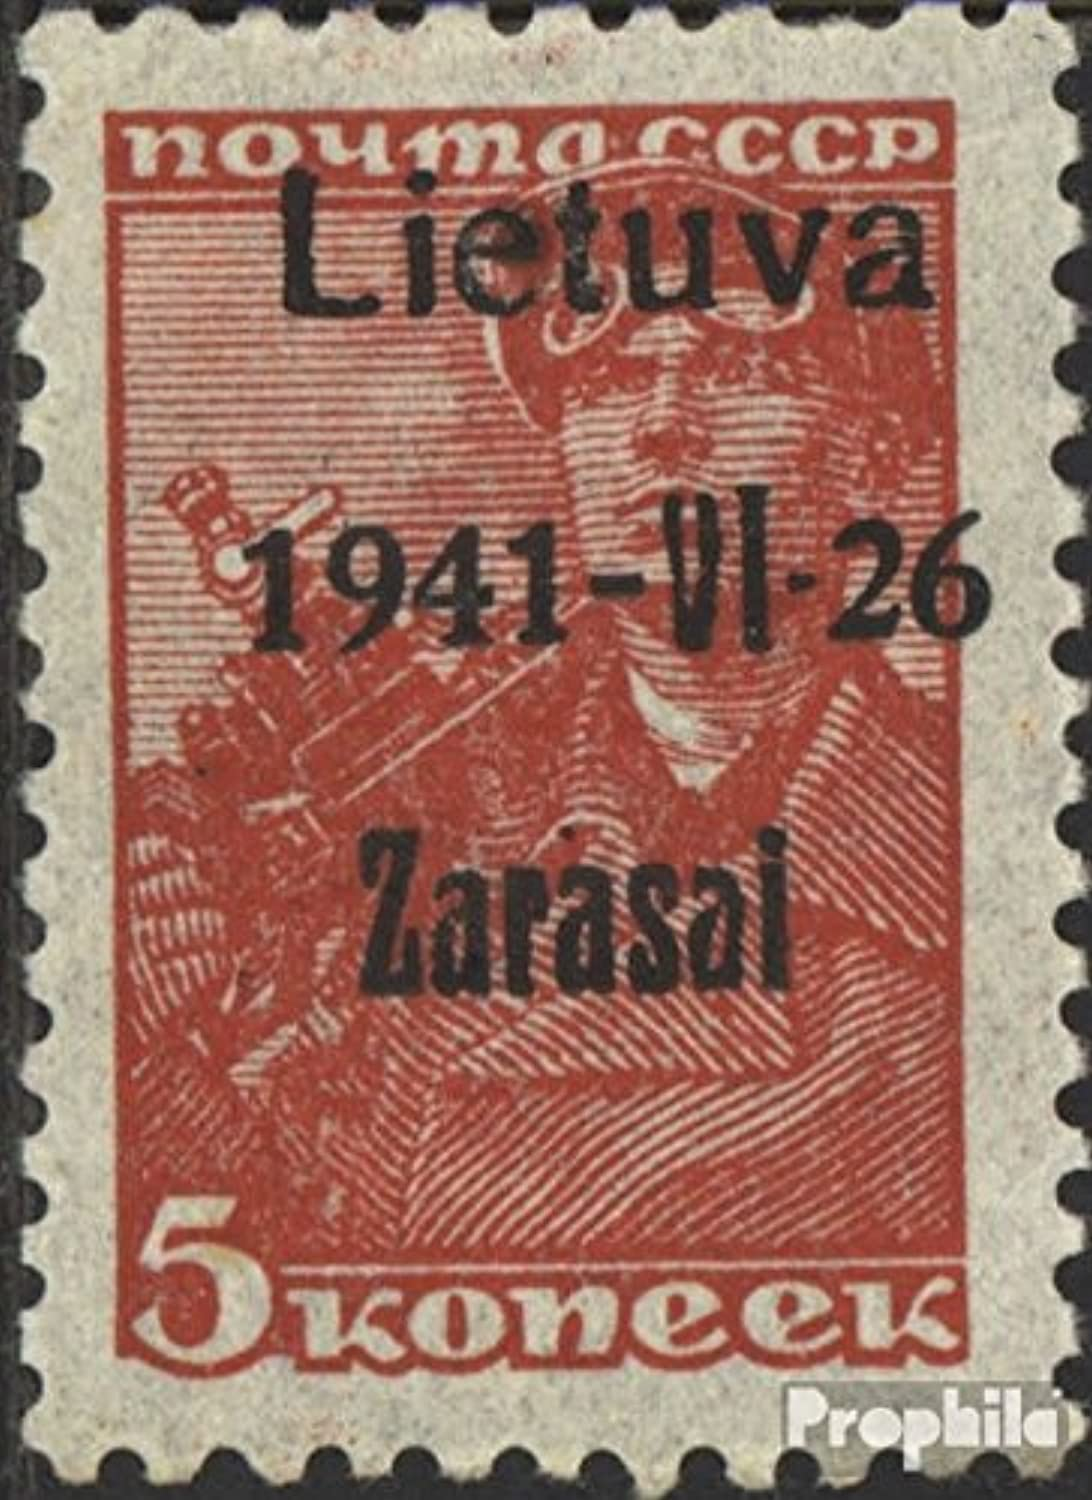 Lithuania (Geruomo.cast.)-Zarasai 1a unmounted mint   never hinged 1941 print edizione (Stamps for collectors)